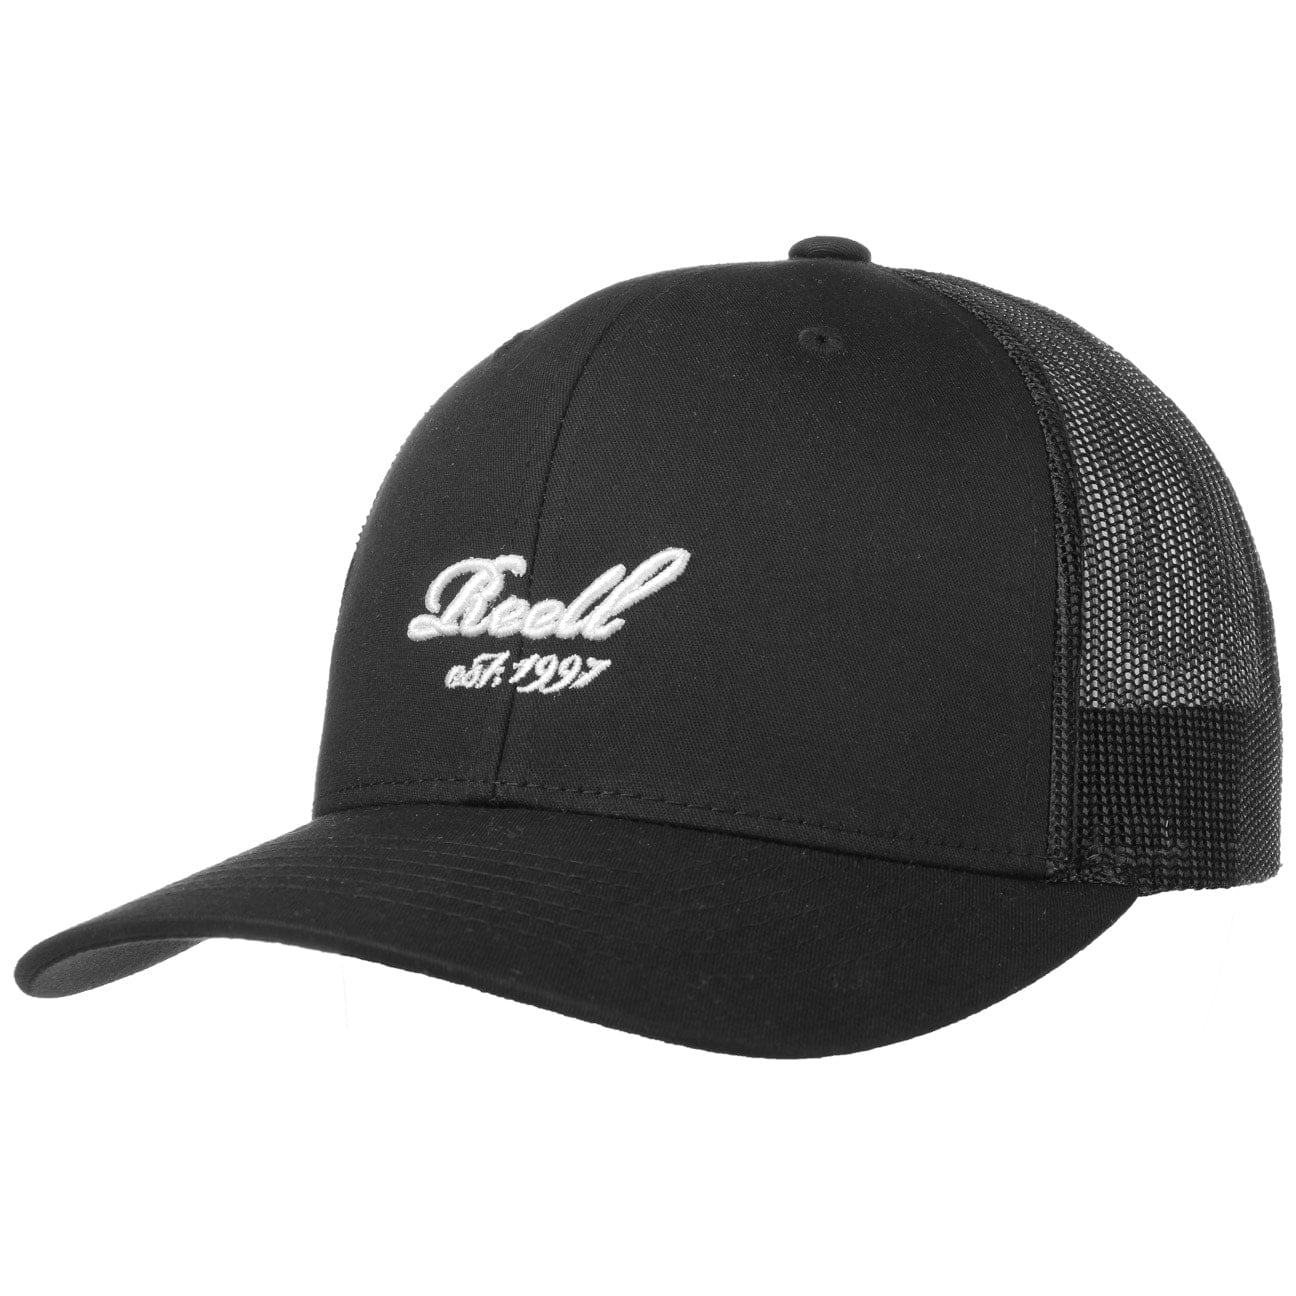 Casquette Trucker Curved by Reell  casquette Mesh